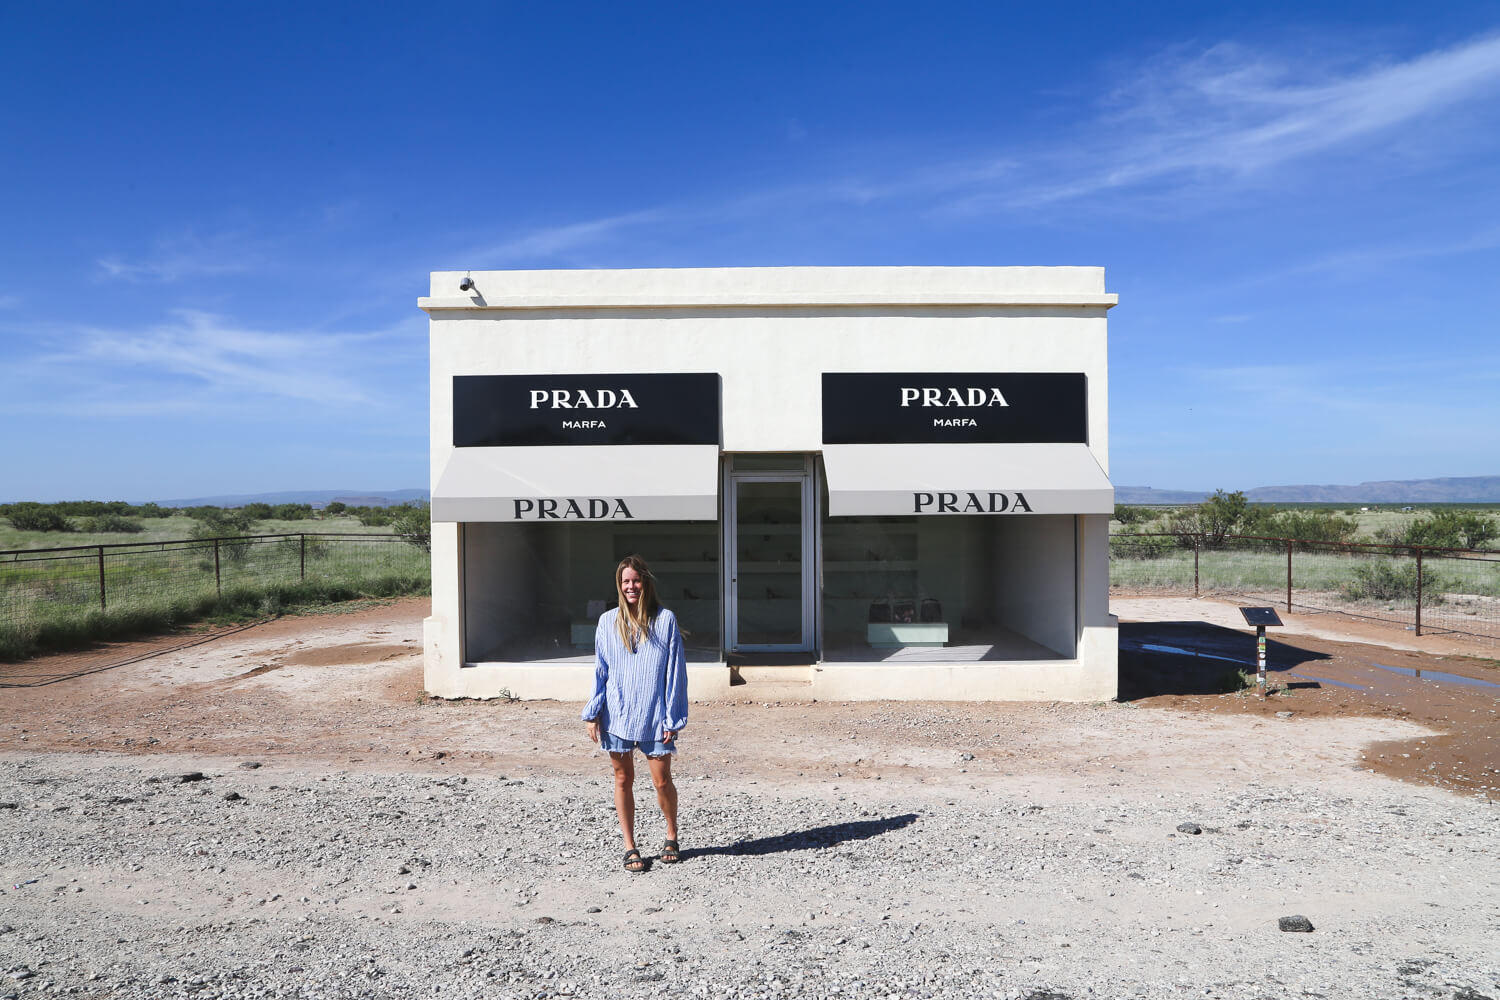 A woman does a handstand against a Prada storefront in the middle of the West Texas desert